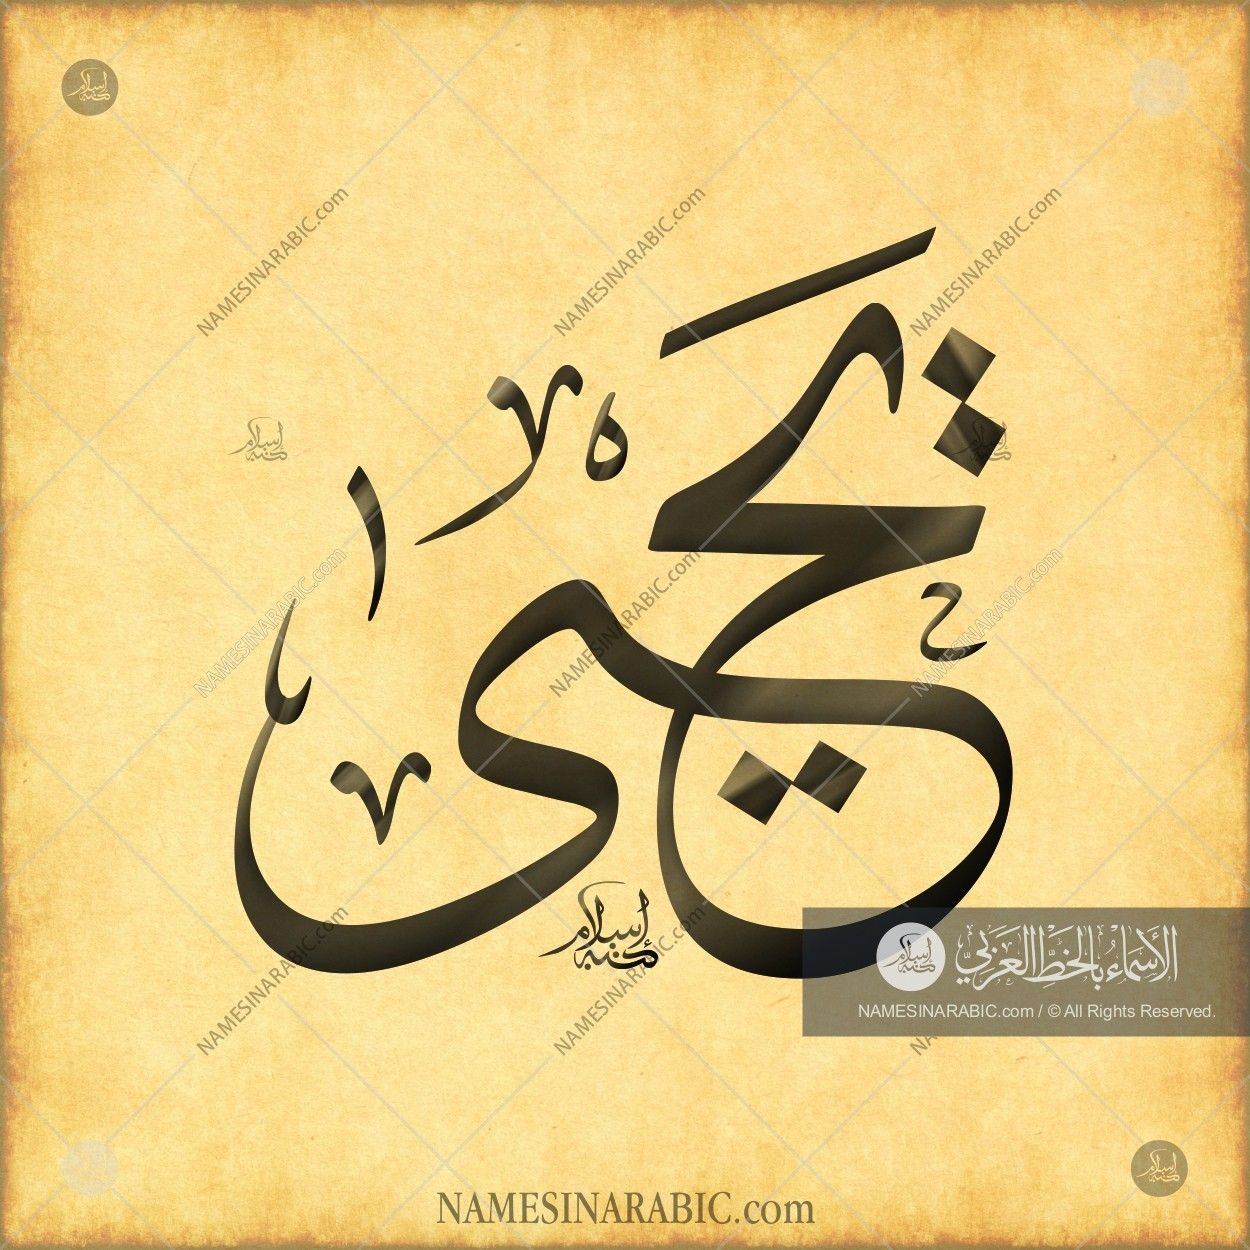 Yahya - يحيى / Names in Arabic Calligraphy | Name# 3410 | Yahya in